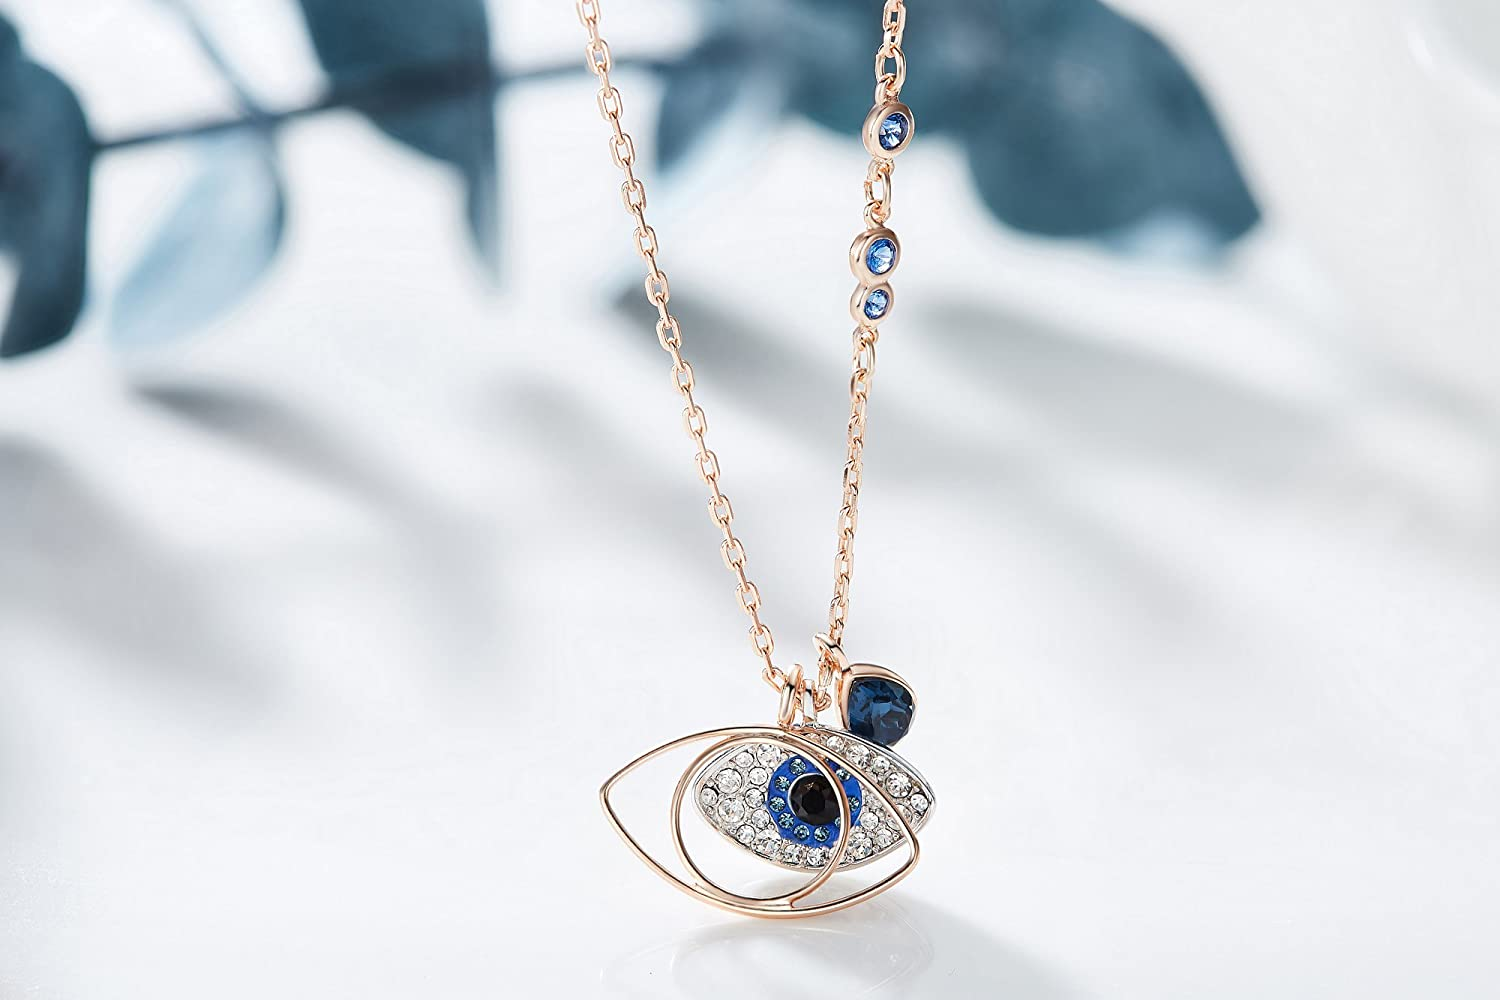 Crystal Necklace Gift for Girls 925 Sterling Silver Girls Necklace Evil Eye Necklace,Blue Topaz Necklace Gifts for Mother